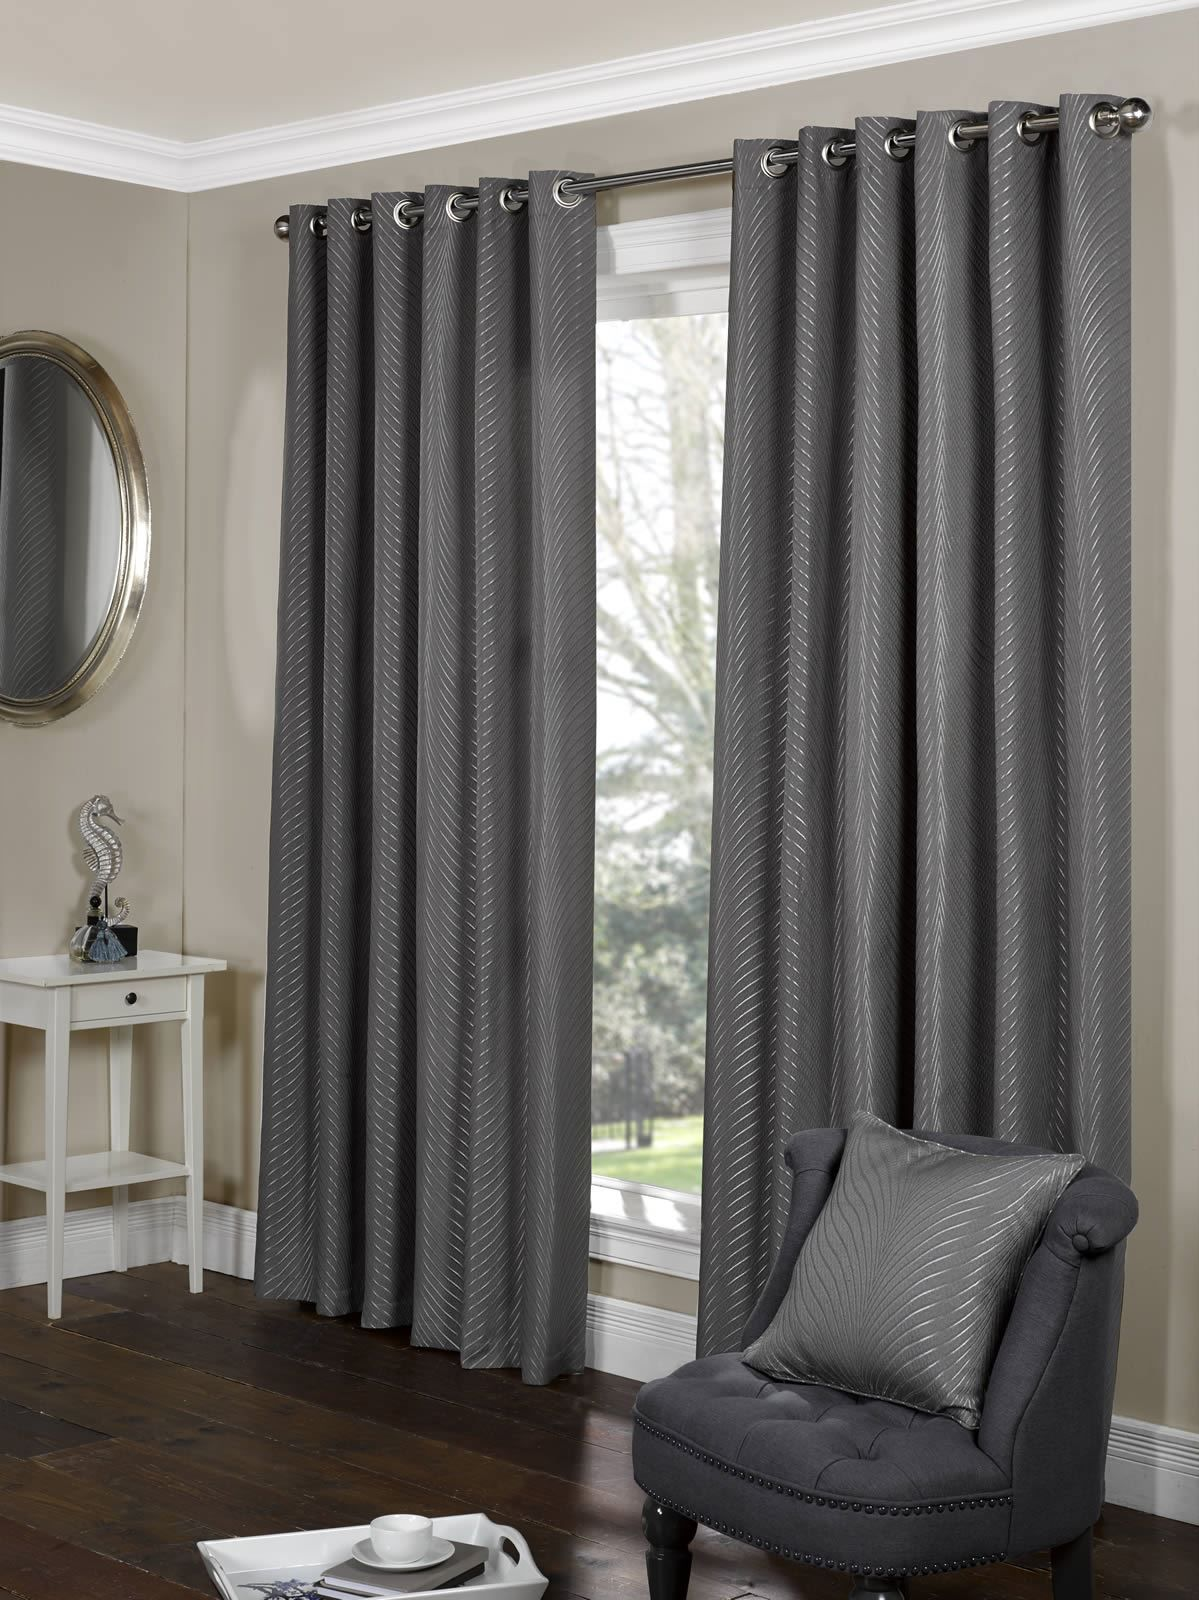 Image Result For Charcoal Curtains For Living Room Curtains Curtains Uk Ready Made Eyelet Curtains Living room curtains pictures